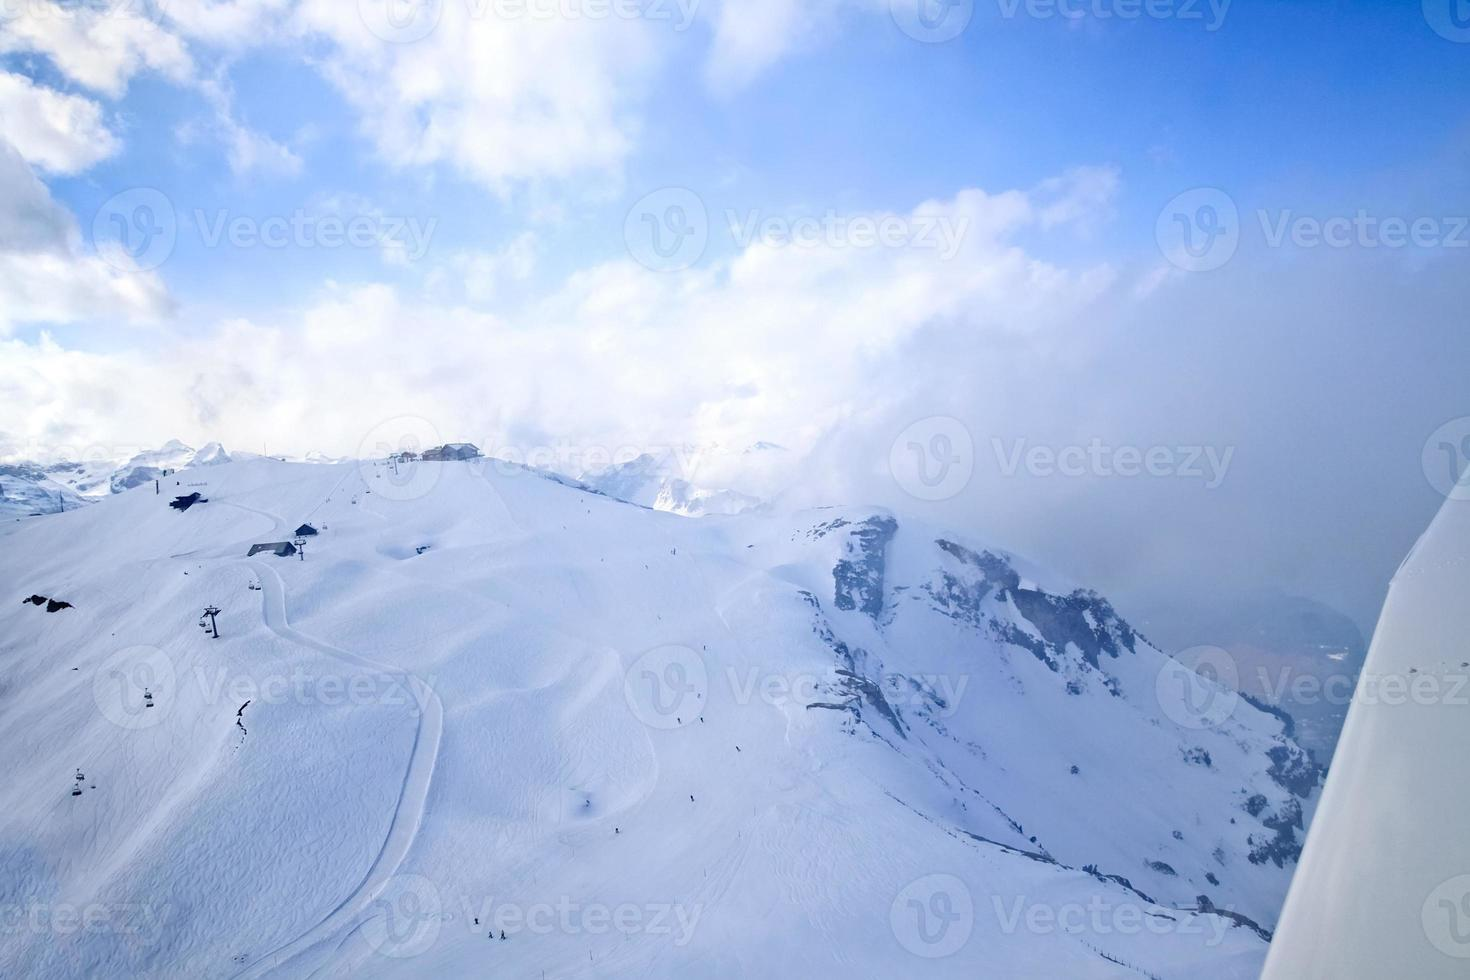 Unique airplane aerial view of central Swiss Alps ski resort photo